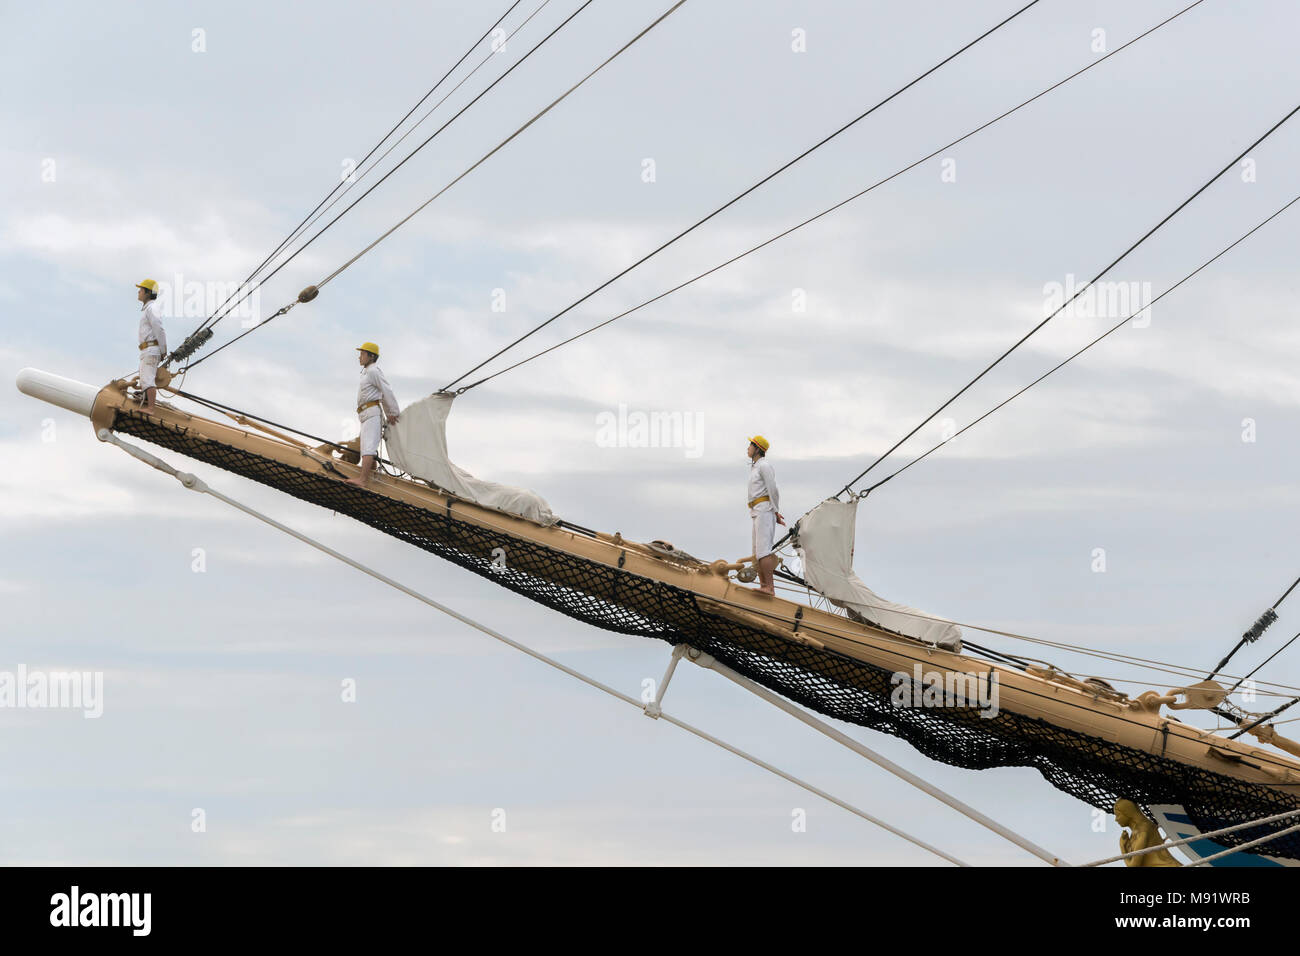 Barefoot sailors standing at attention on the bowsprit during the departure ceremony, Kaiwo Maru, Steveston, BC - Stock Image